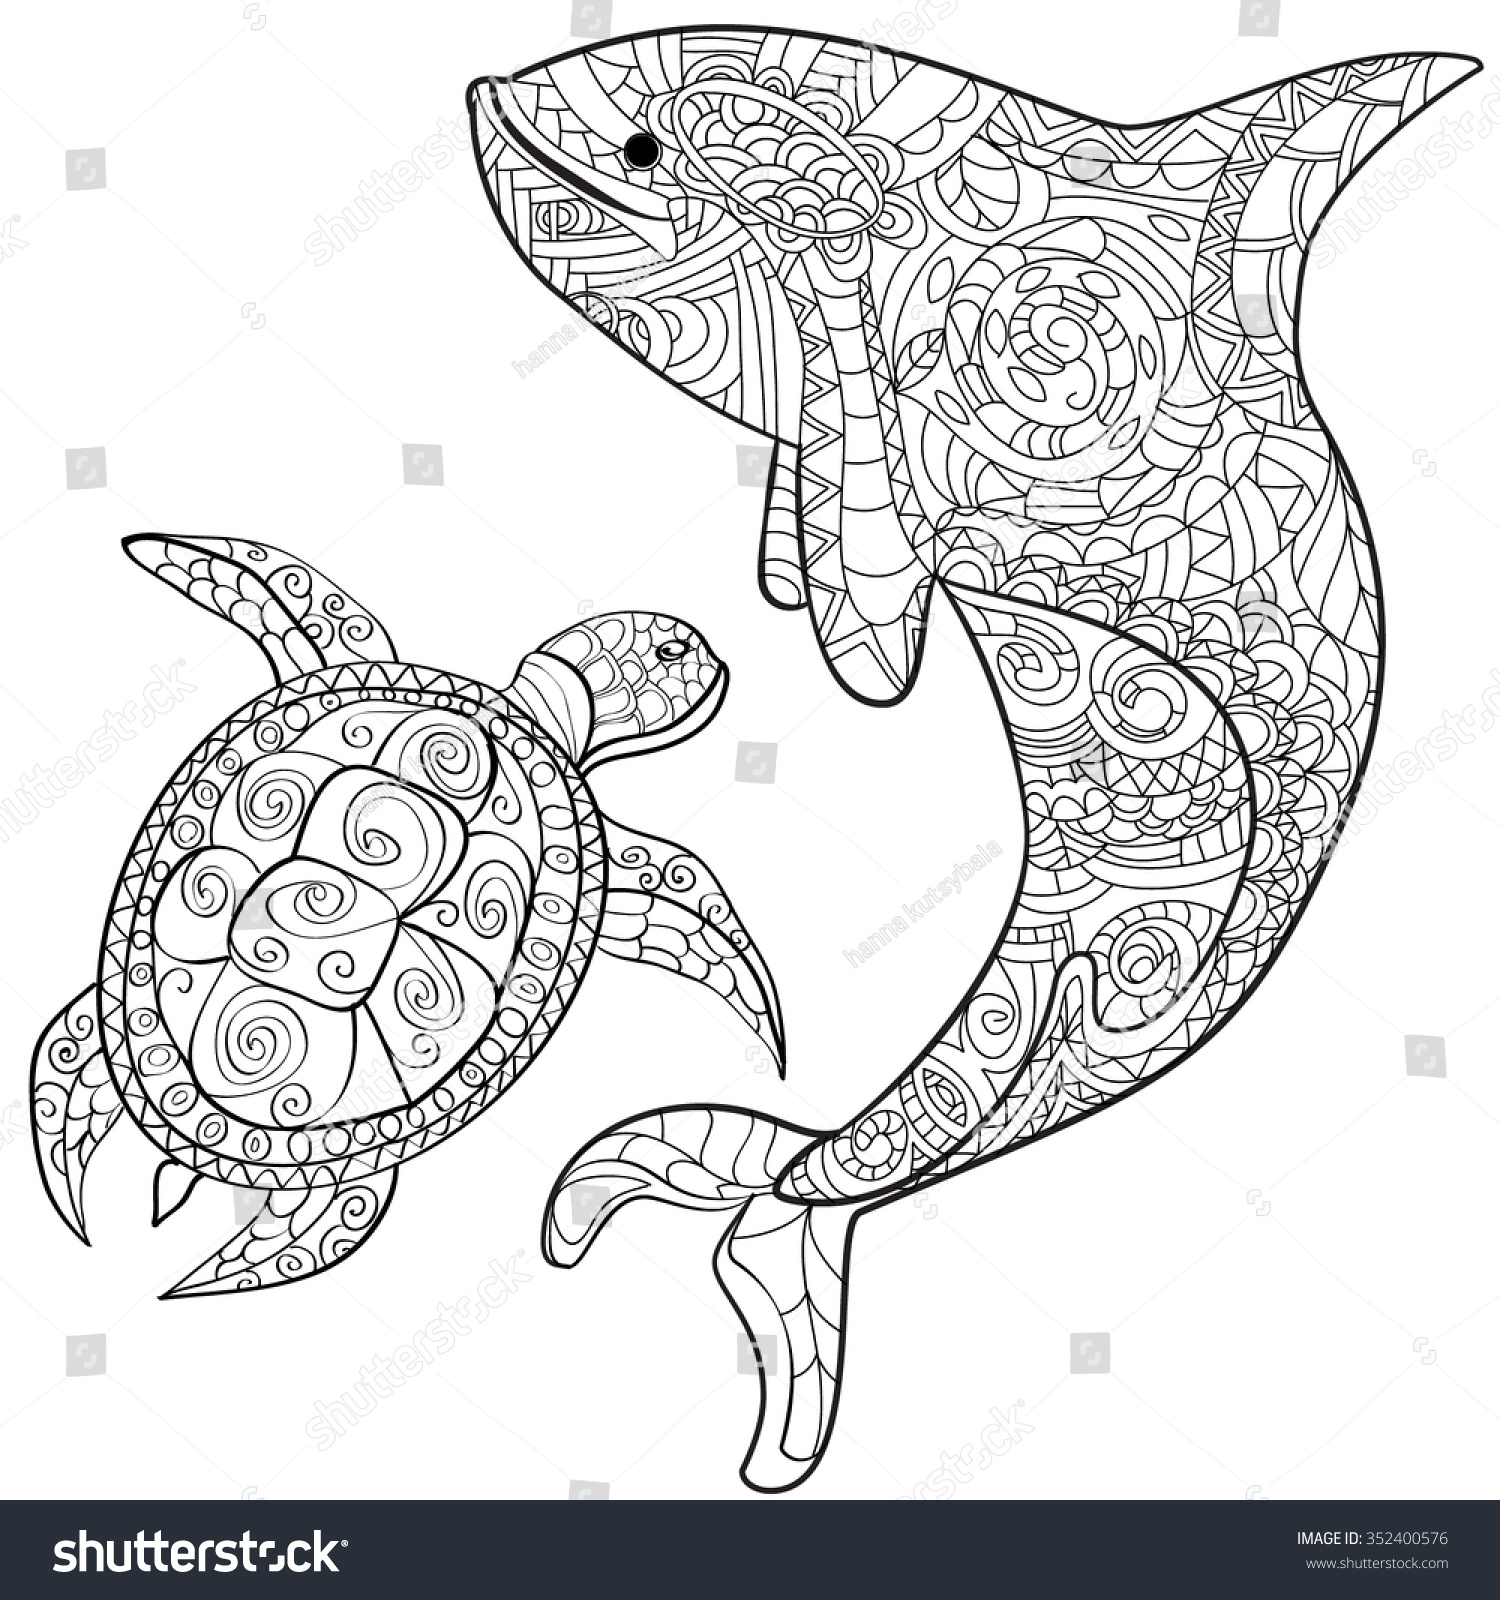 Hand Drawn Whale Turtle Isolated On Stock Vector (Royalty Free ...